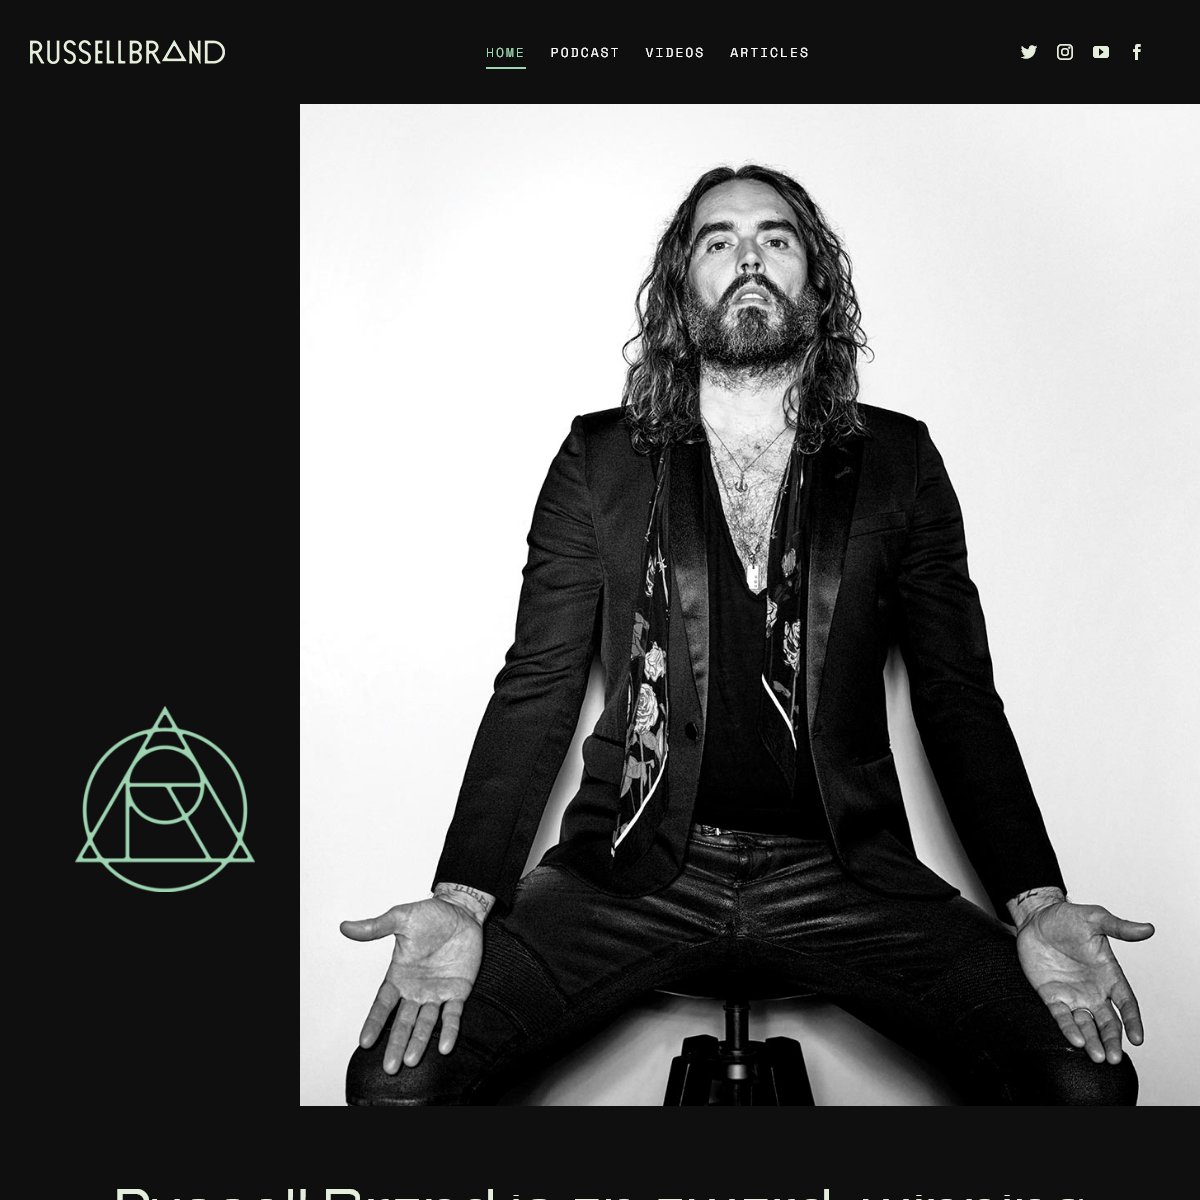 Russell Brand - Official Website